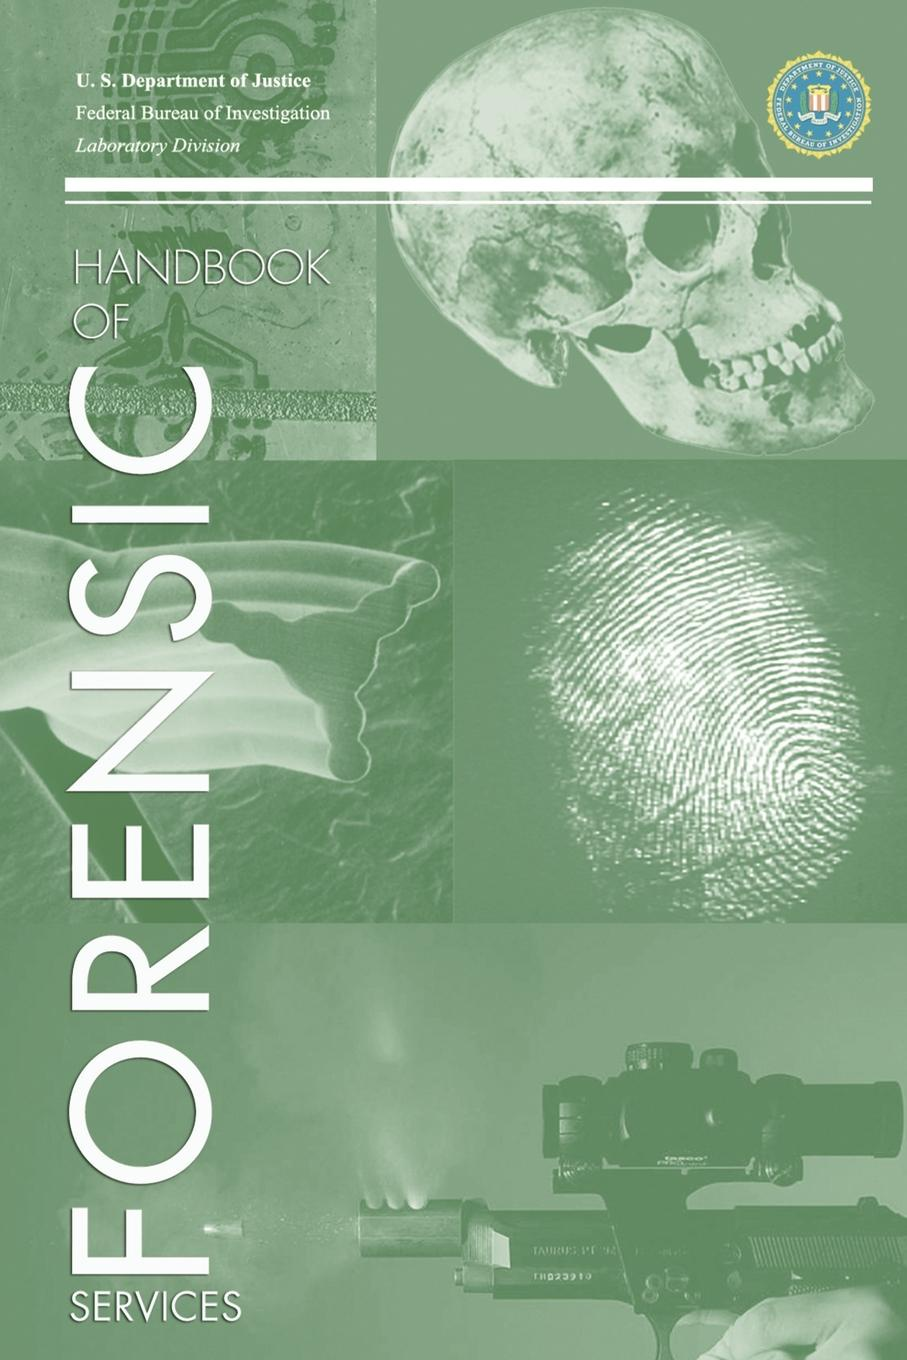 Federal Bureau of Investigation FBI Handbook of Crime Scene Forensics hubert razik handbook of asynchronous machines with variable speed isbn 9781118600863